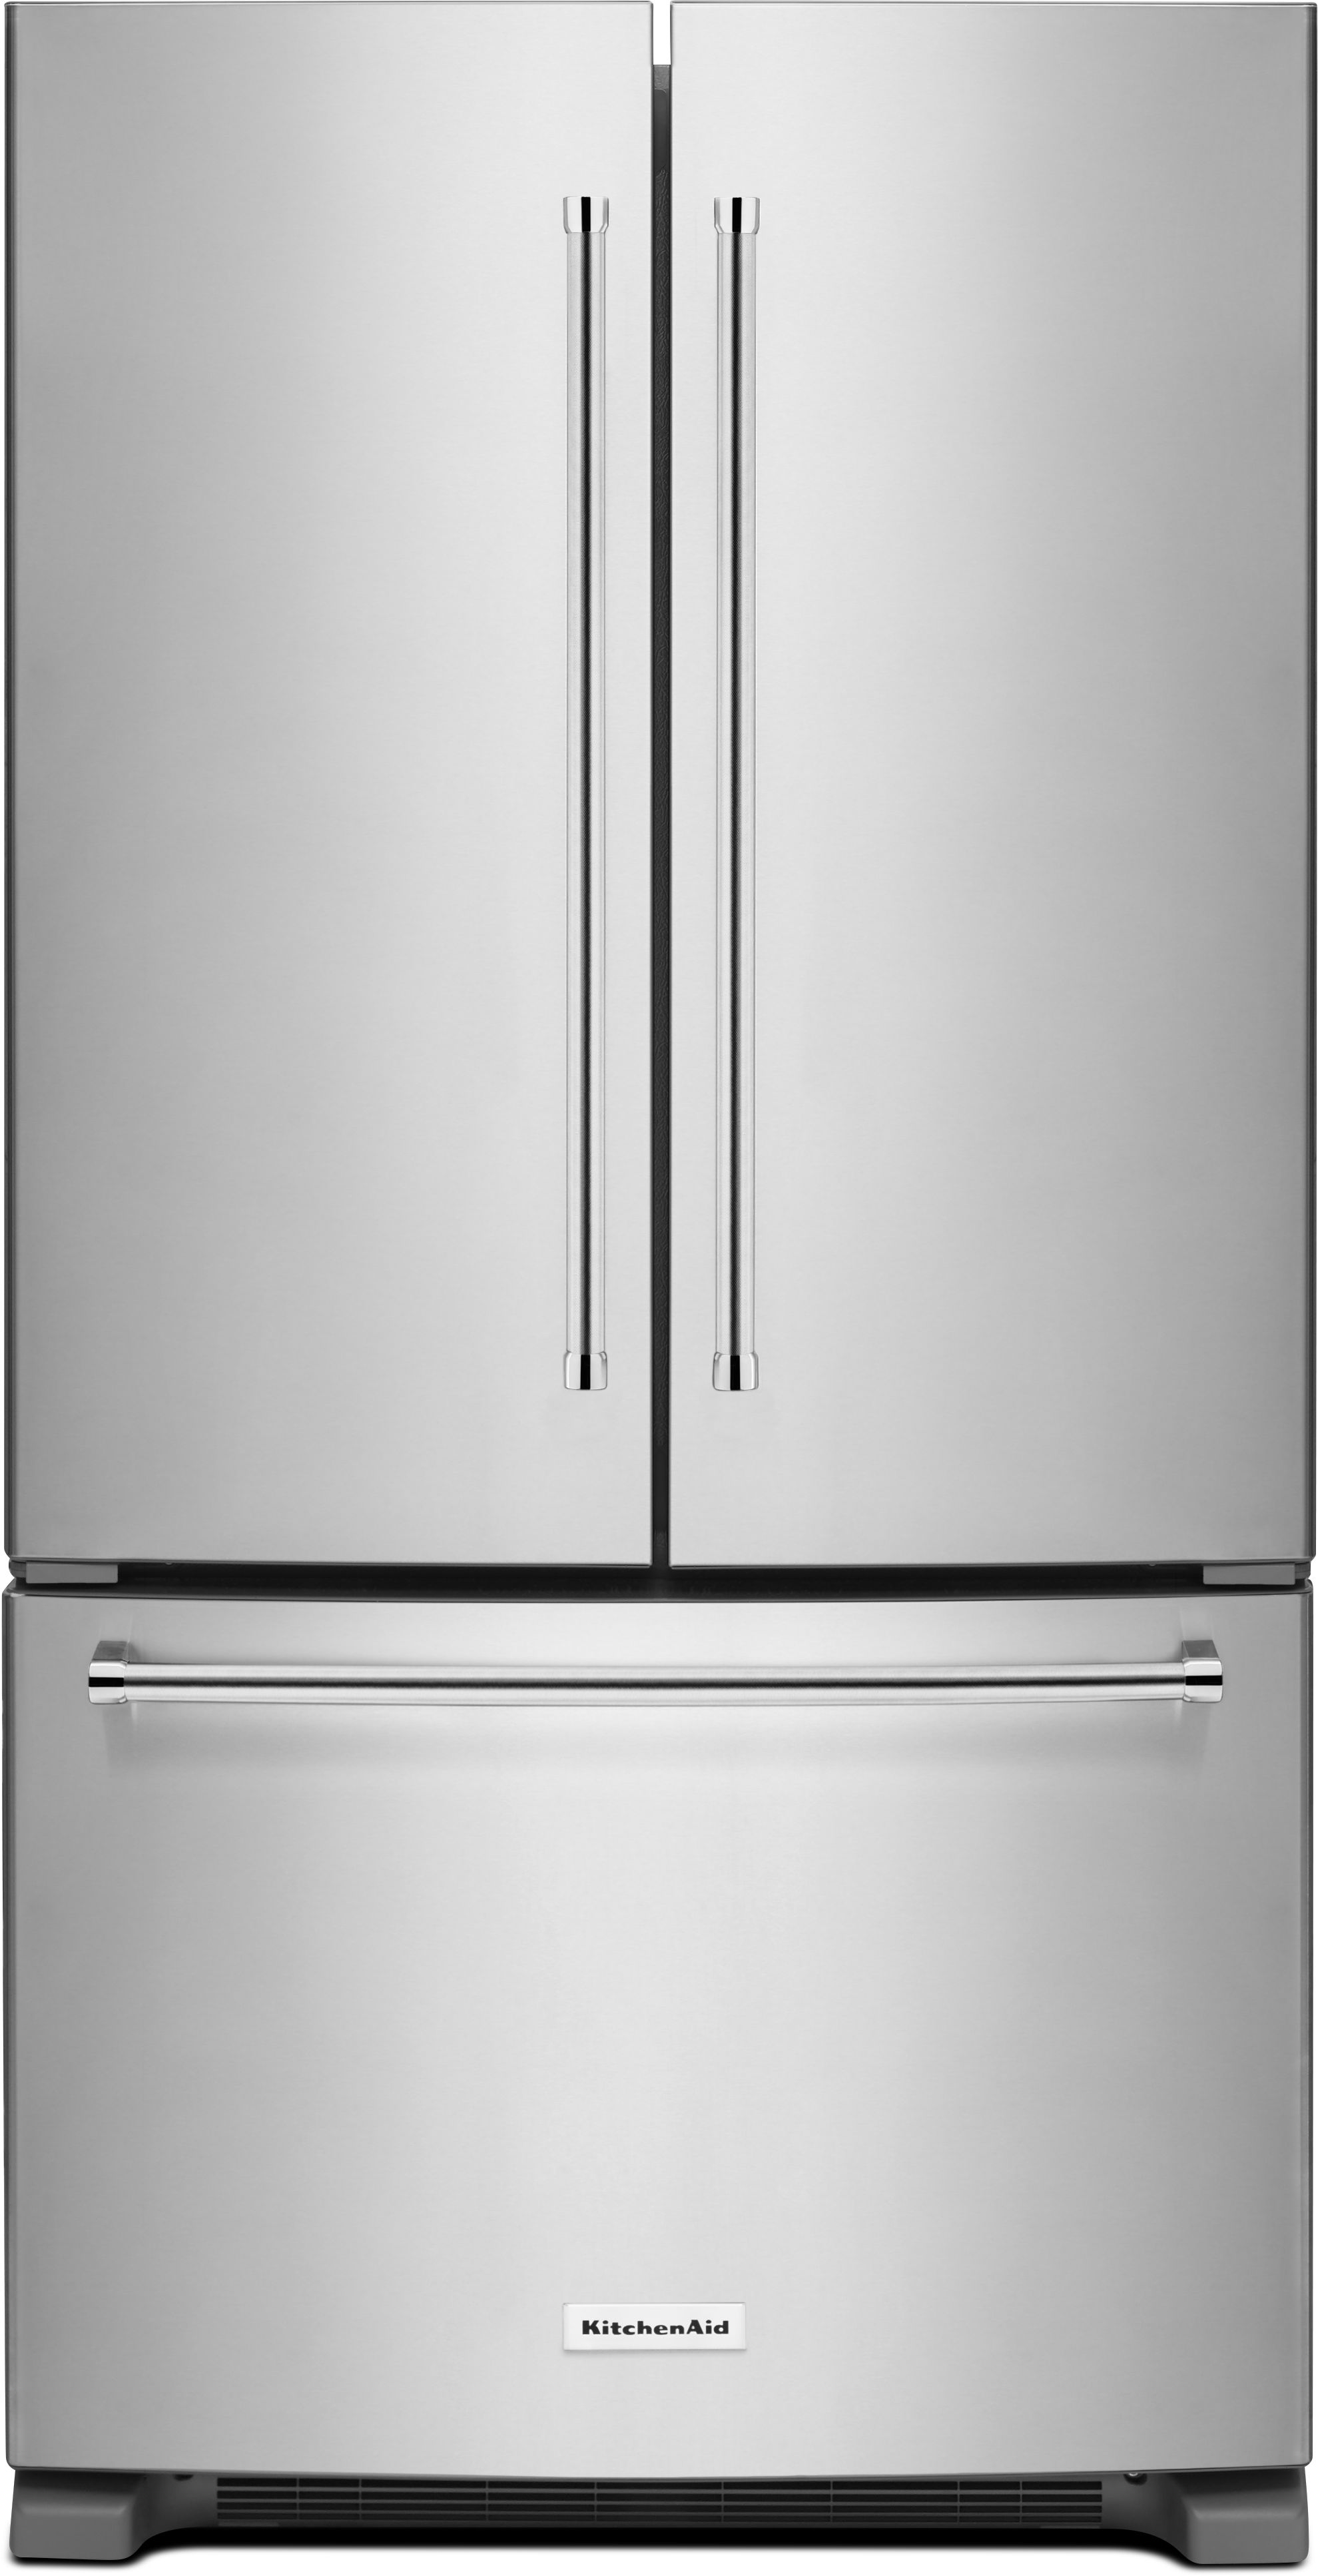 Kitchen Aid 250 Cu Ft French Door Refrigerator Stainless Steel